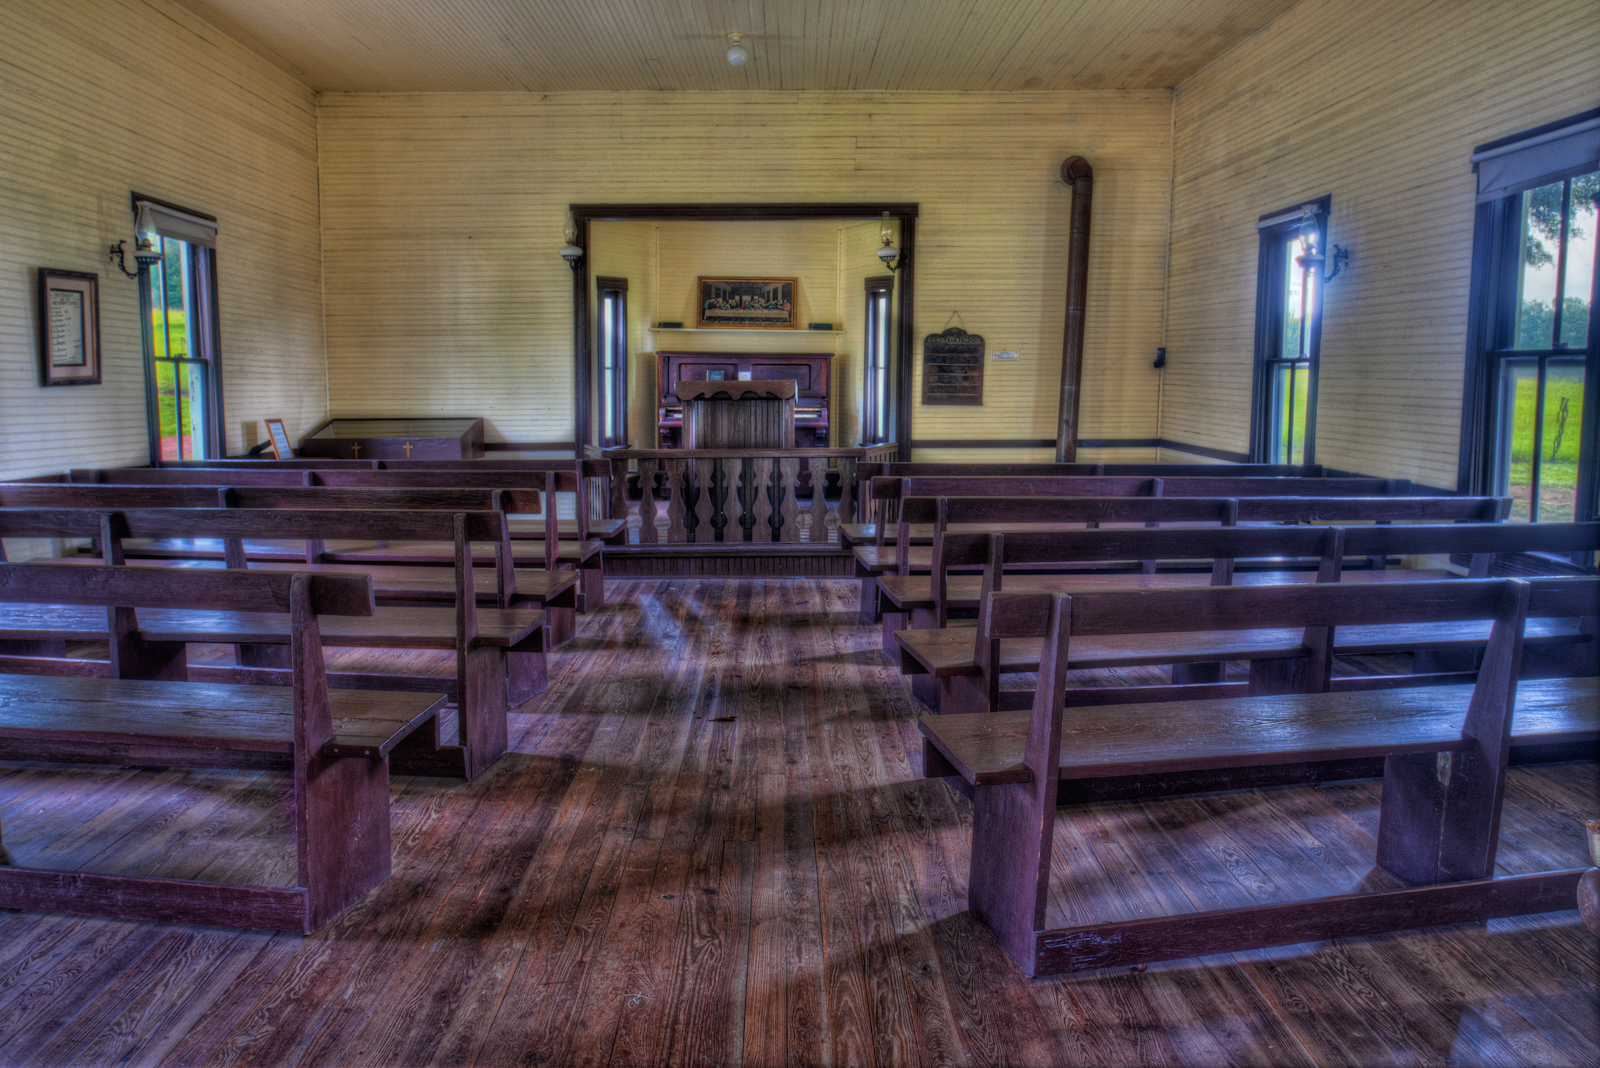 View inside a church that was built in 1873 and later replaced in 1903.